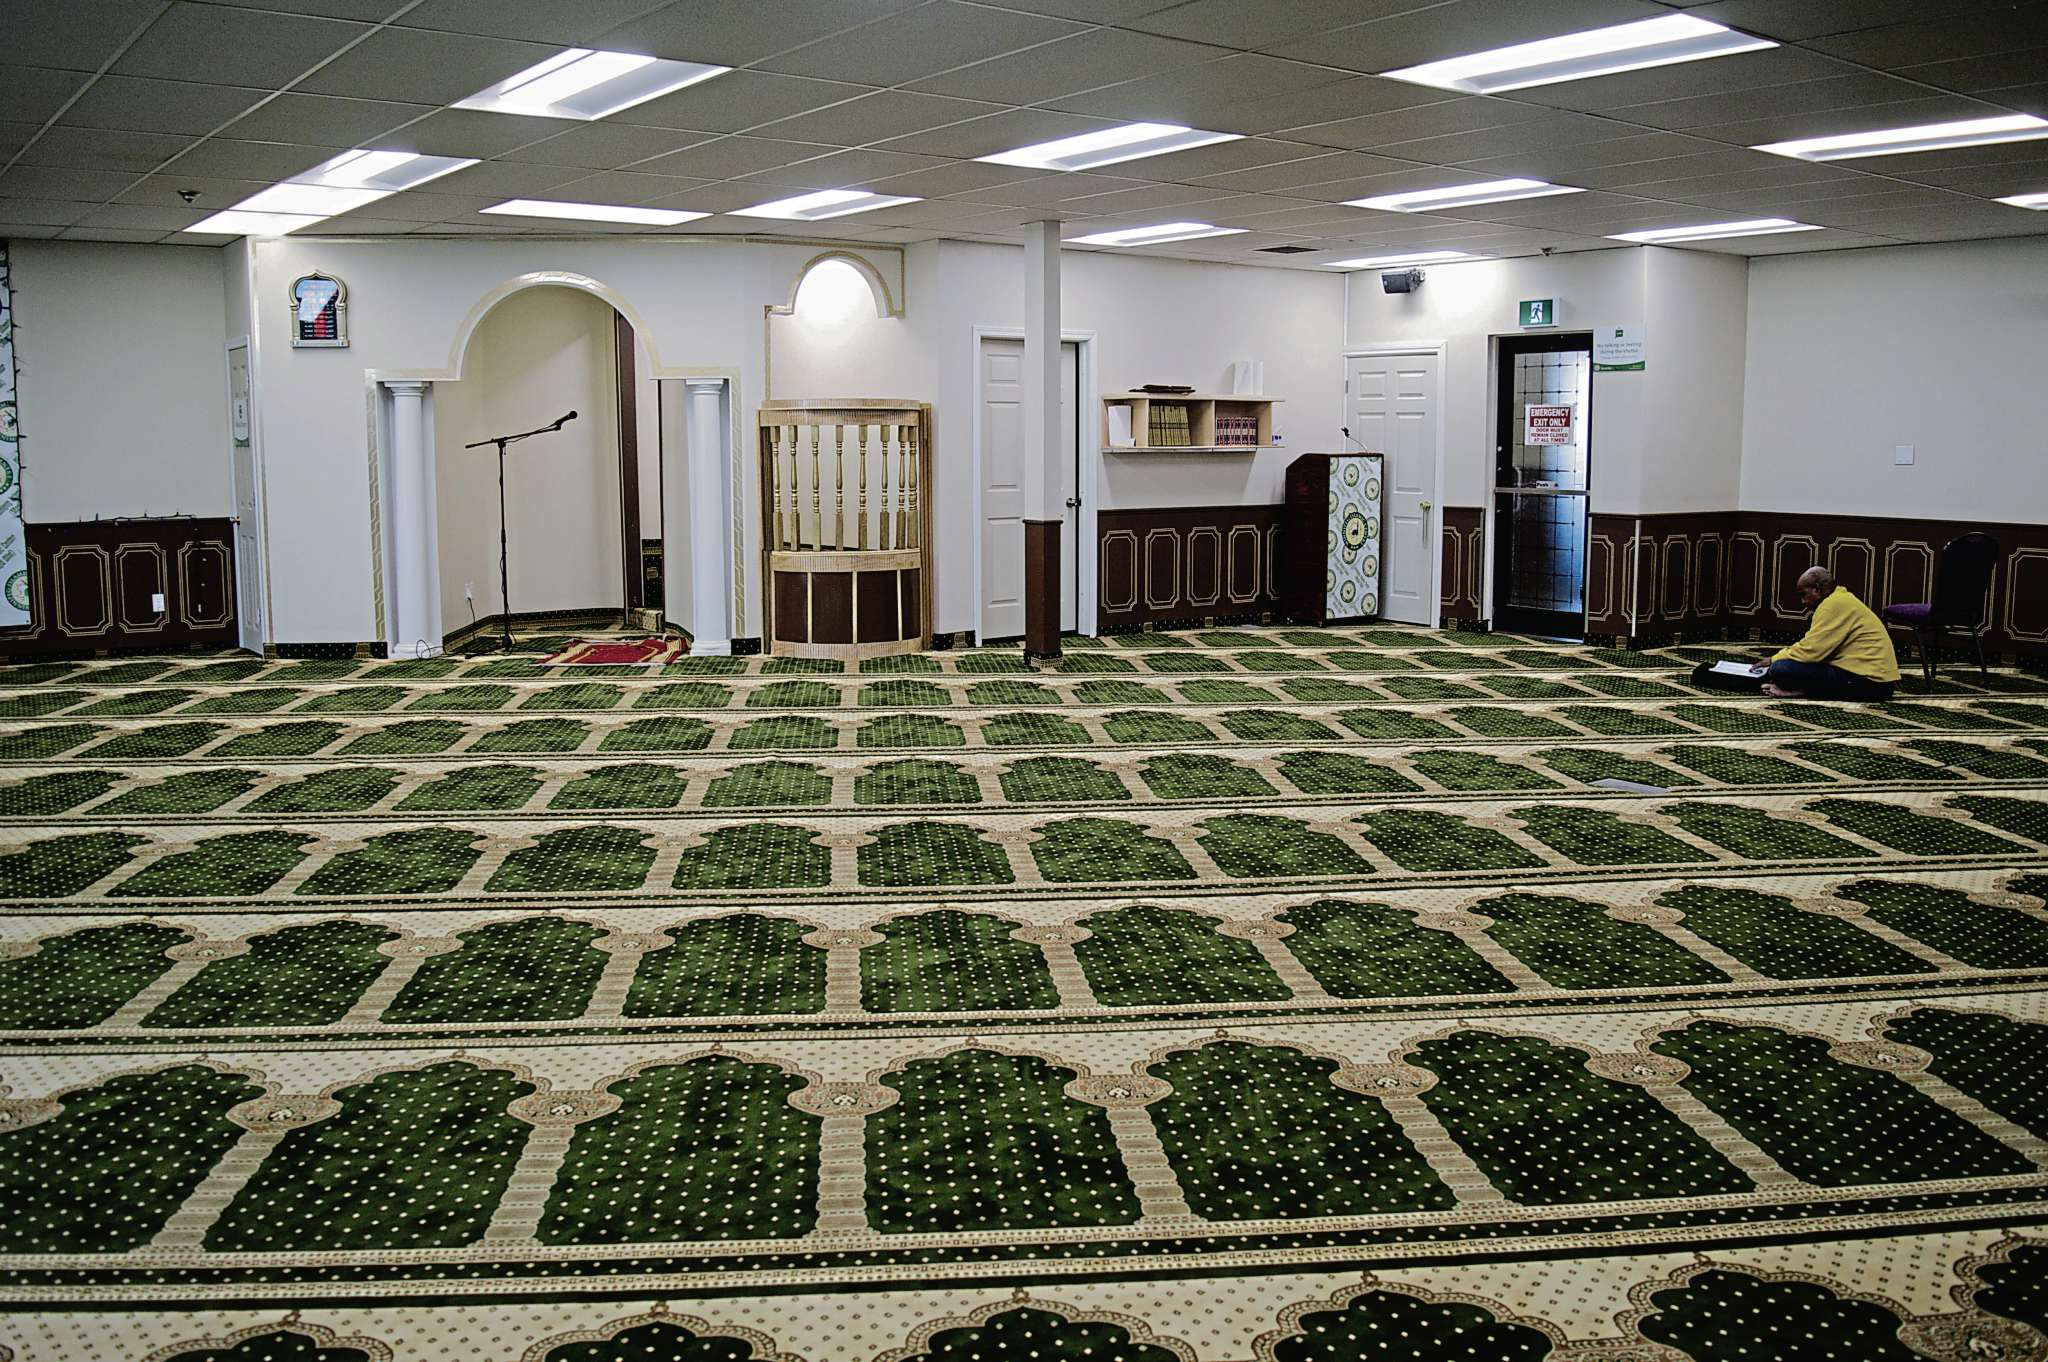 Masjid Bilal features comfortable carpeting with a pattern that denotes which direction guests should pray to. The entire remodel has cost approximately $150,000.